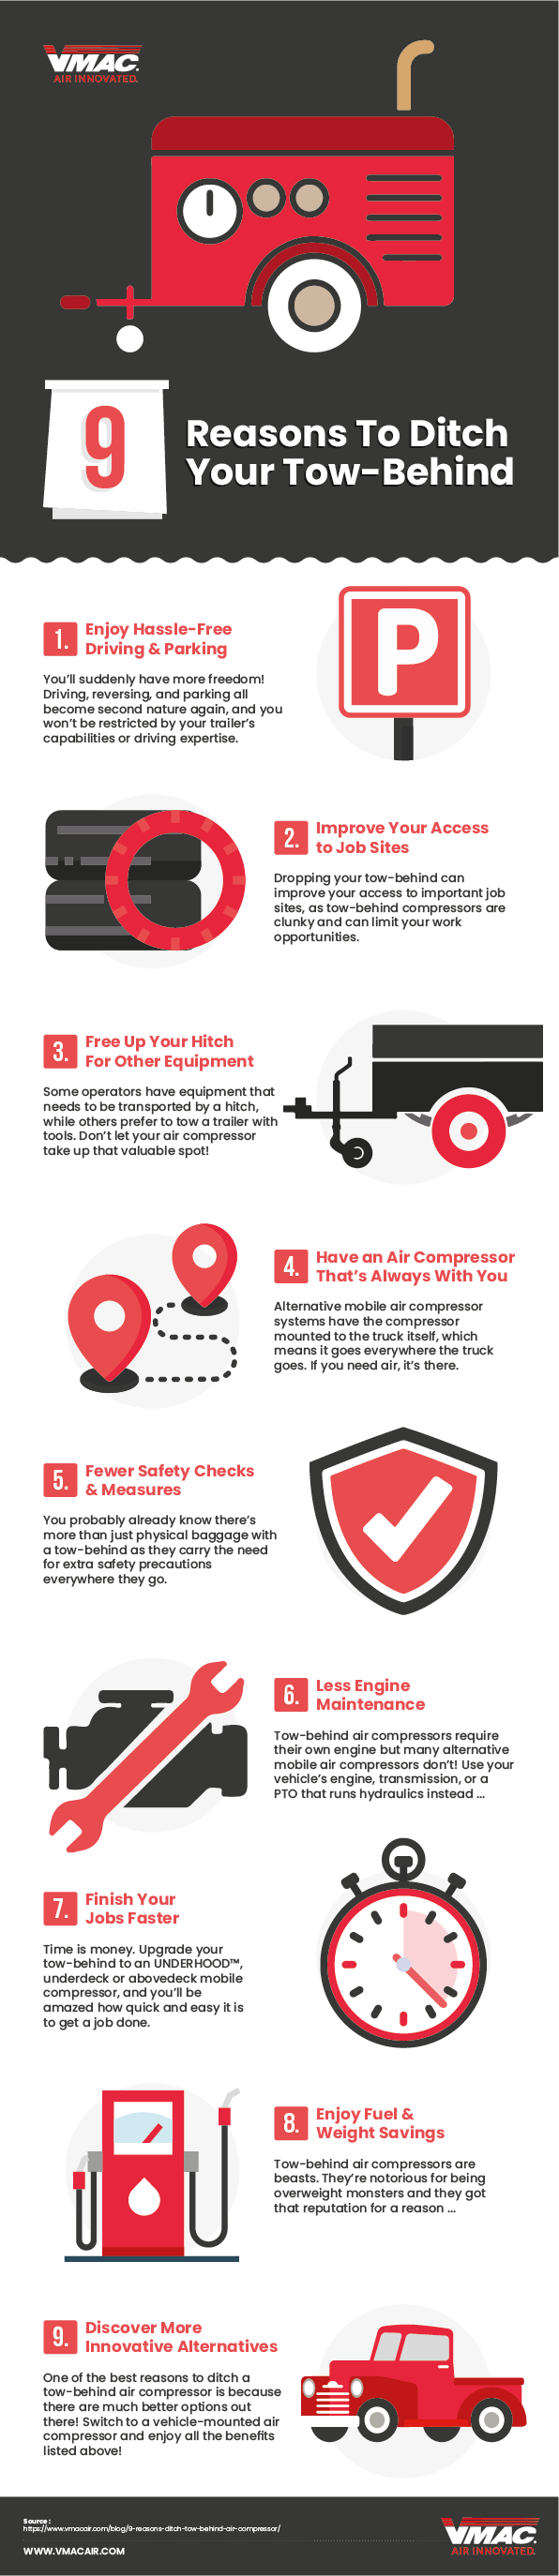 Reasons To Ditch Your Tow Behind Infographic